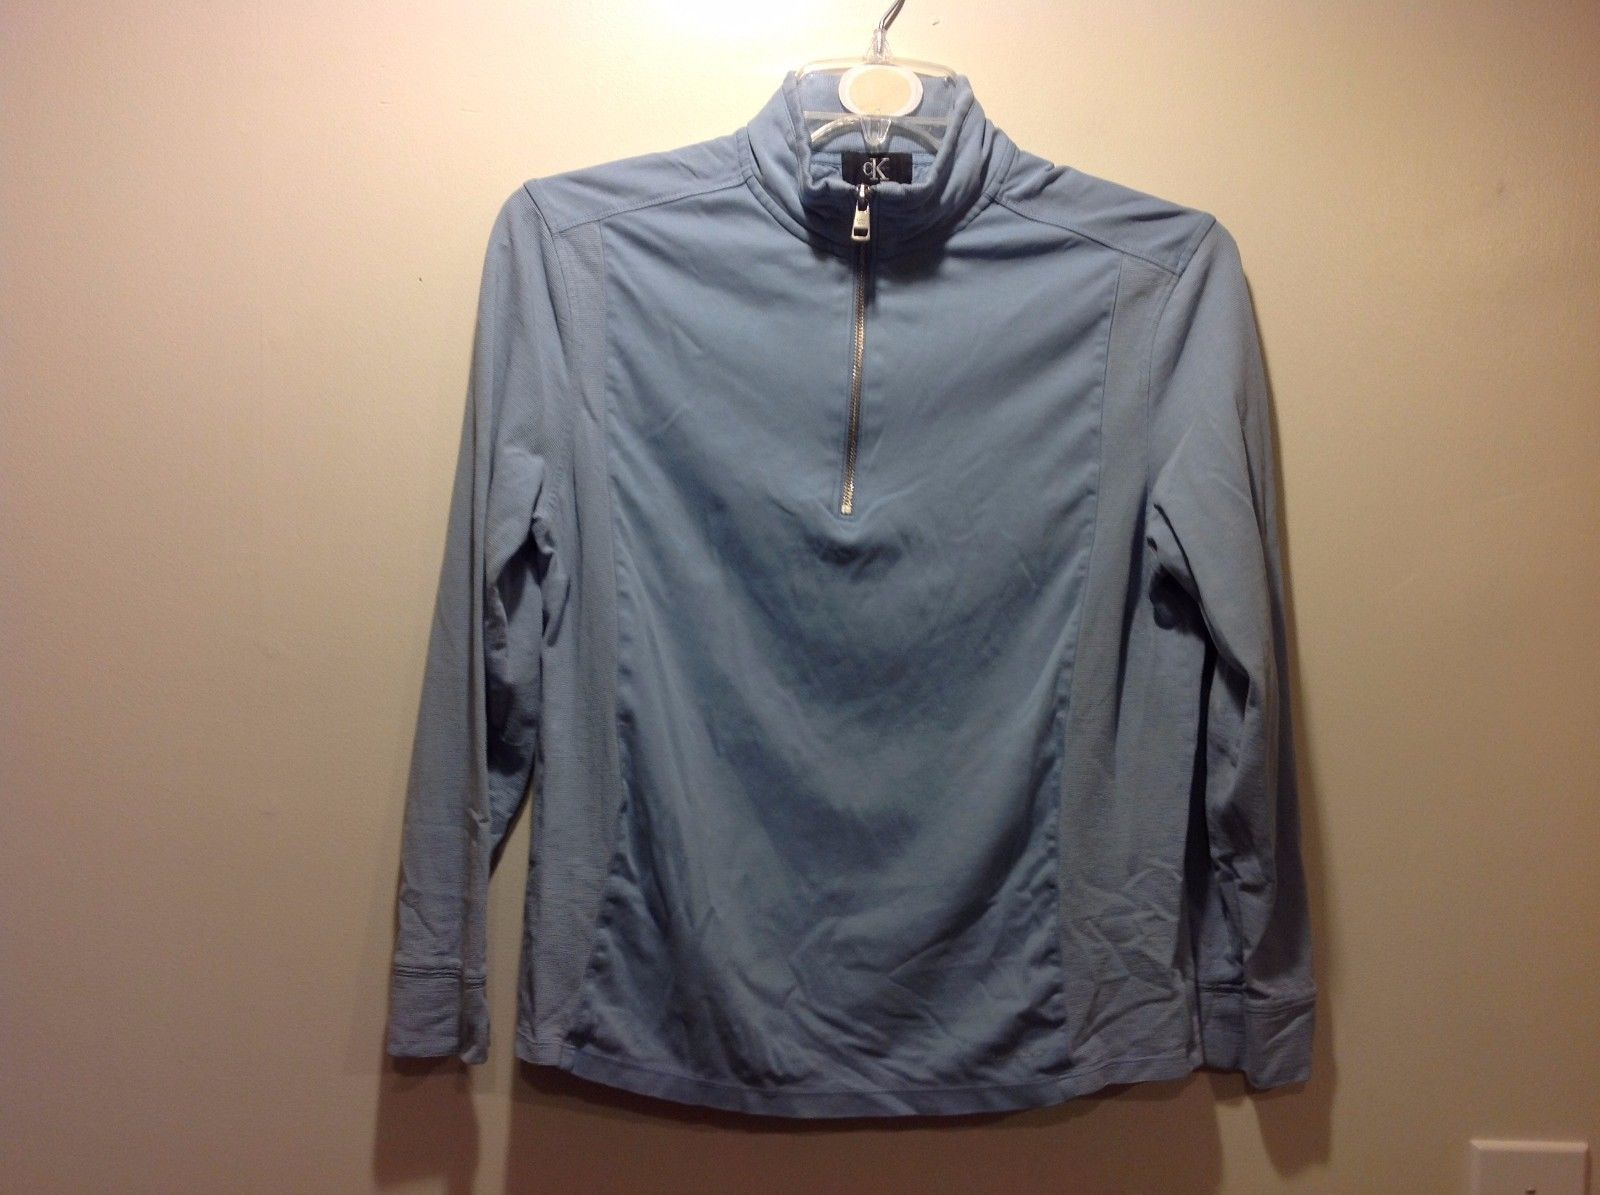 Periwinkle Pale Blue Pullover Jacket by Calvin Klein Sz Medium